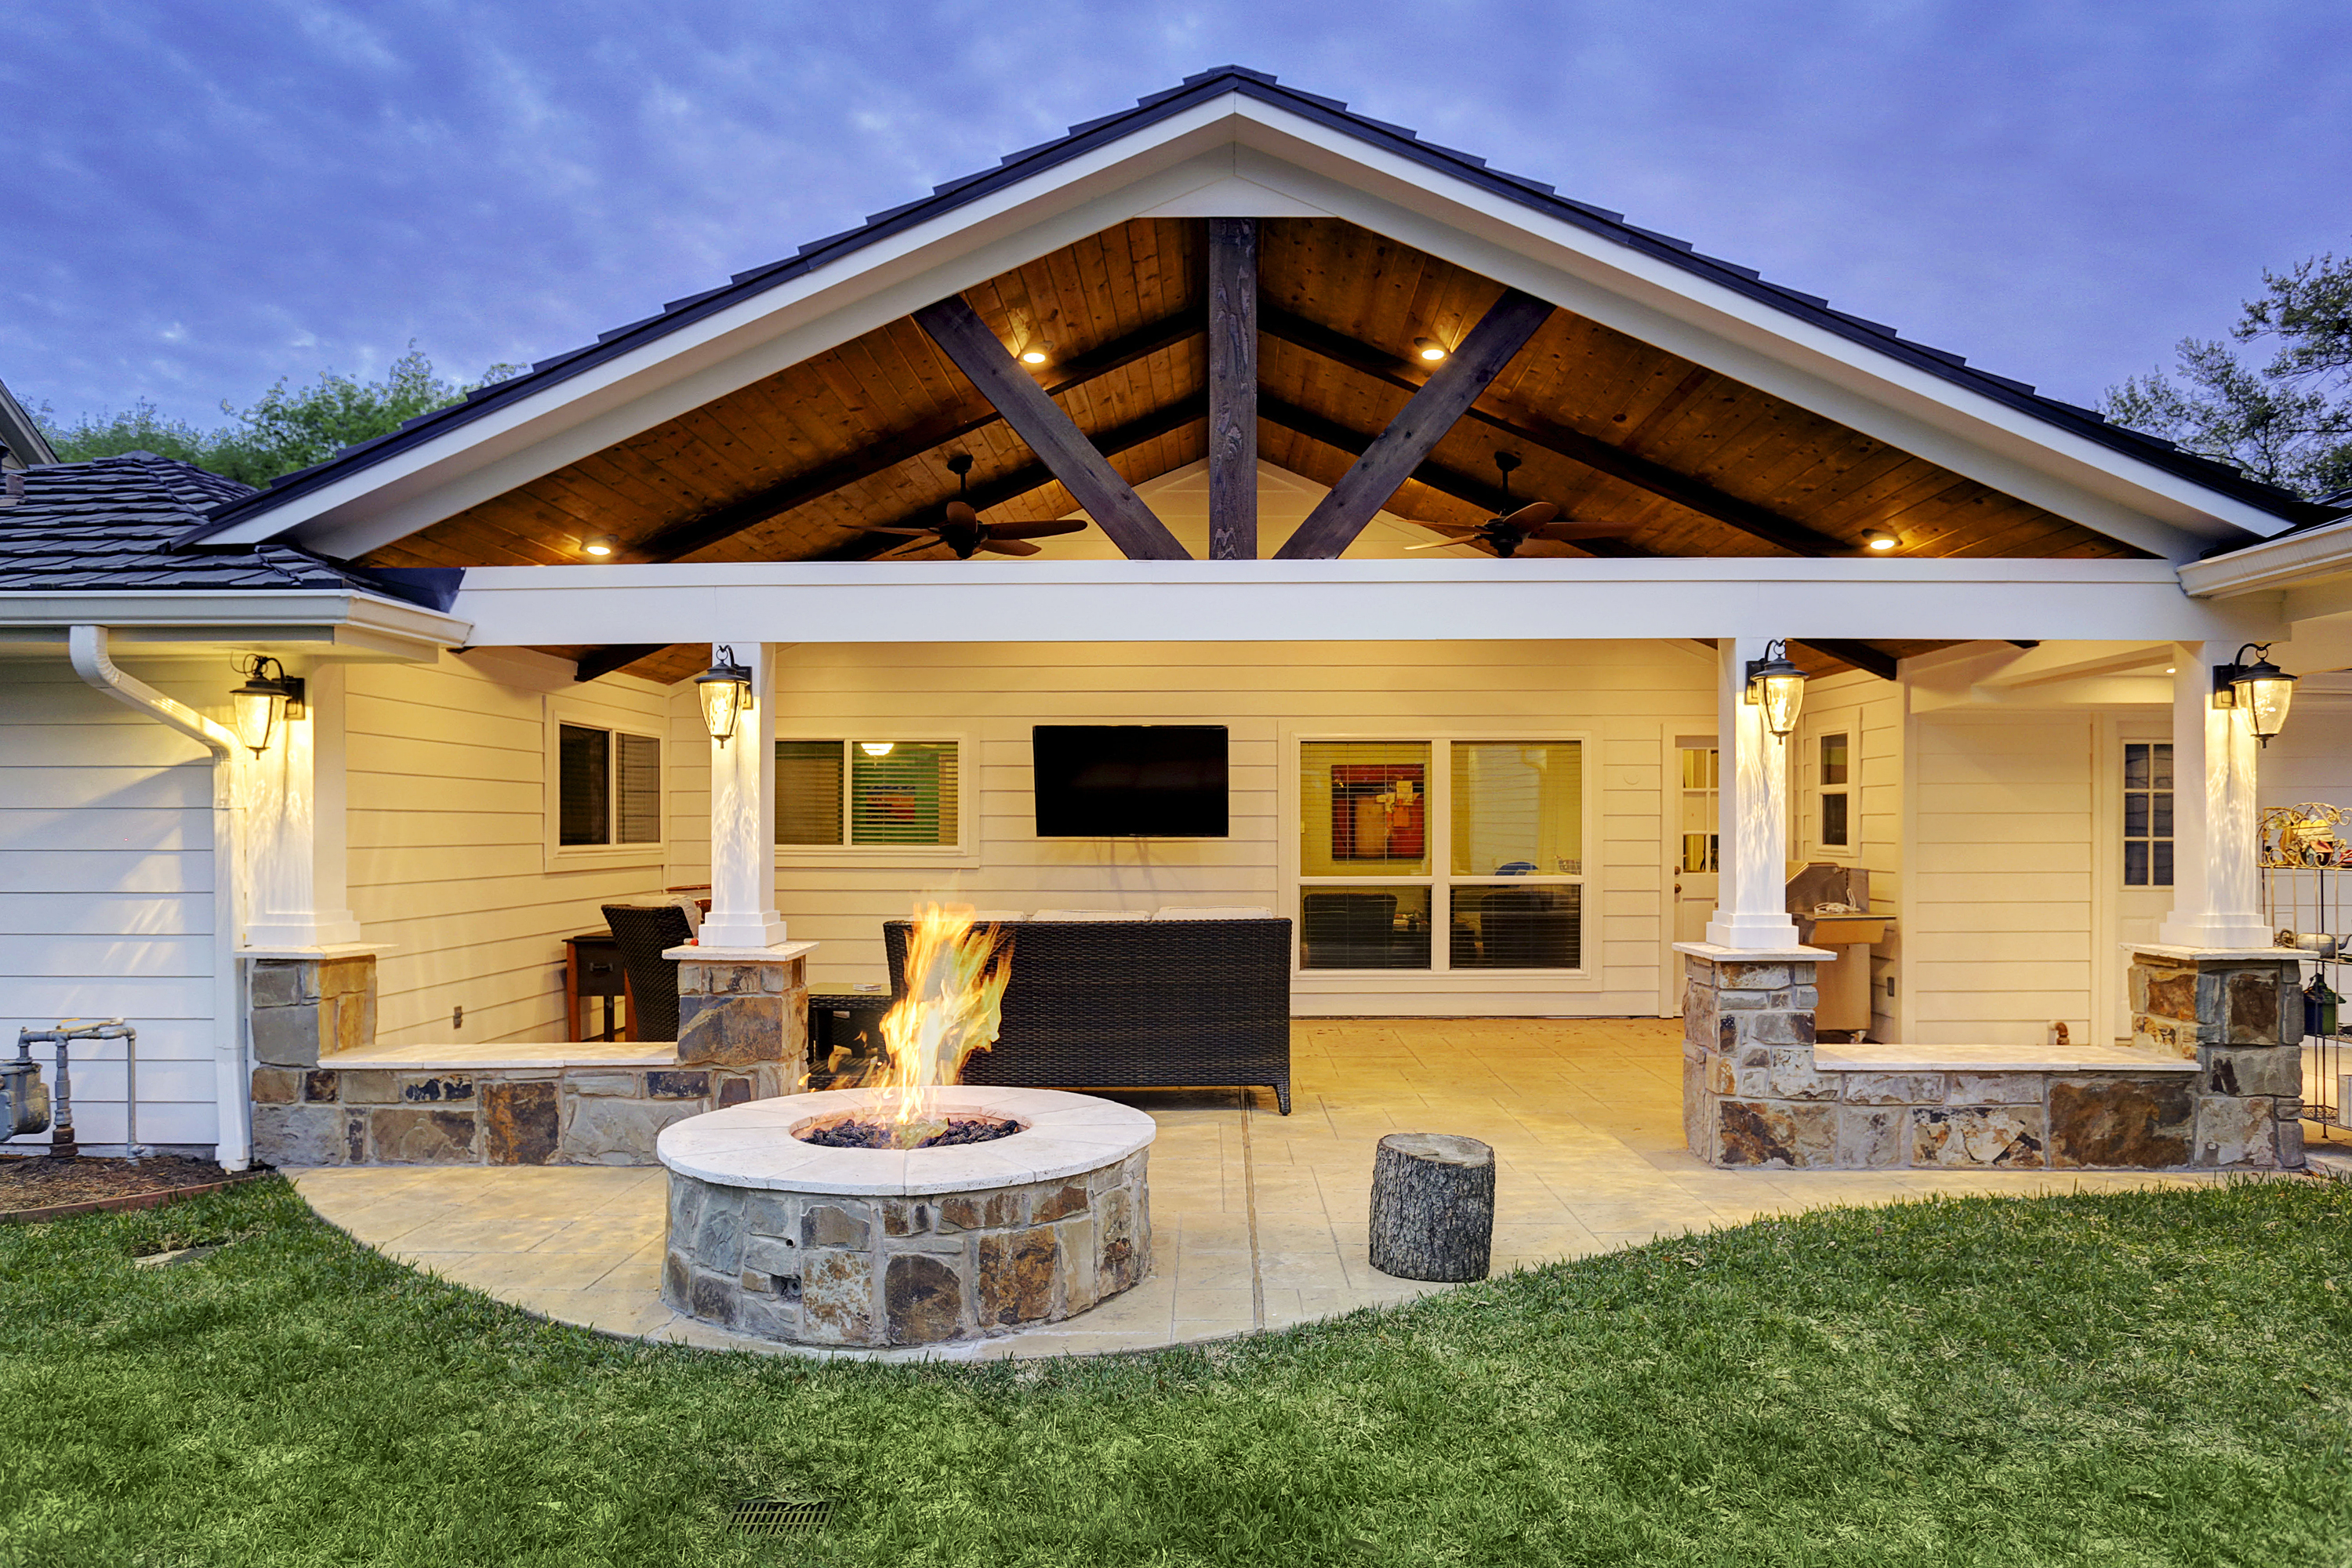 Patio Cover with Fire Pit Houston - Texas Custom Patios on Covered Patio Ideas id=54388